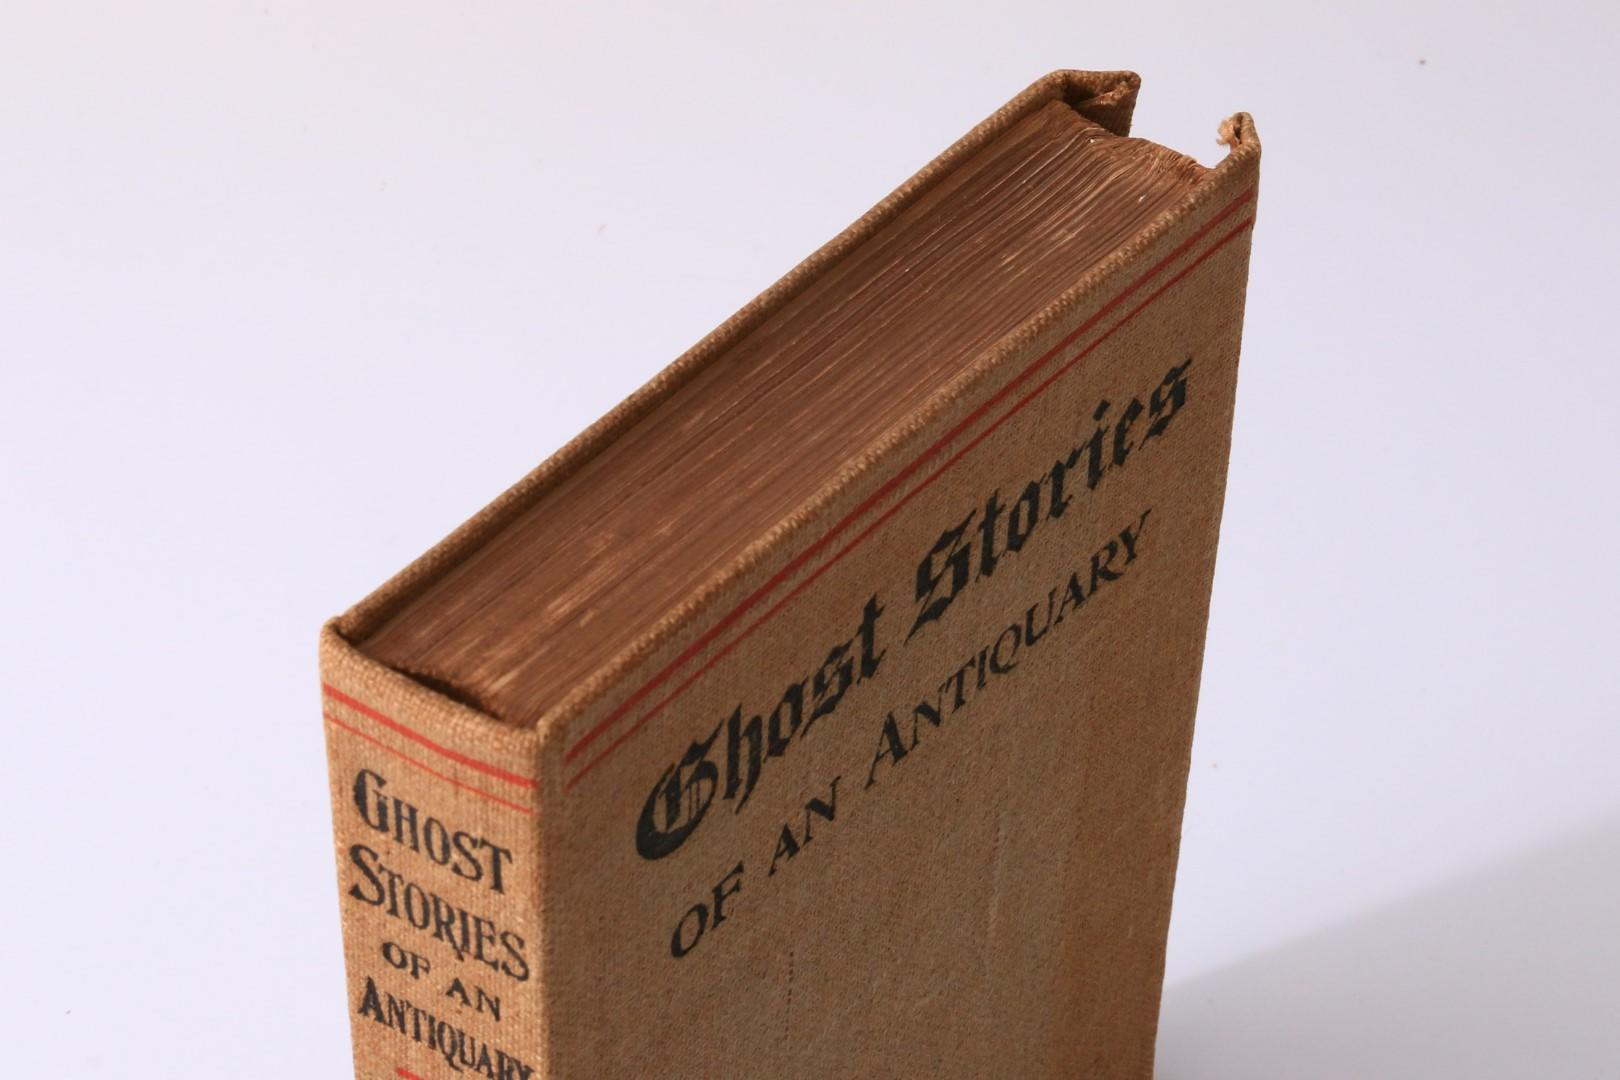 M.R. James - Ghost Stories of an Antiquary - Edward Arnold, 1904, First Edition.